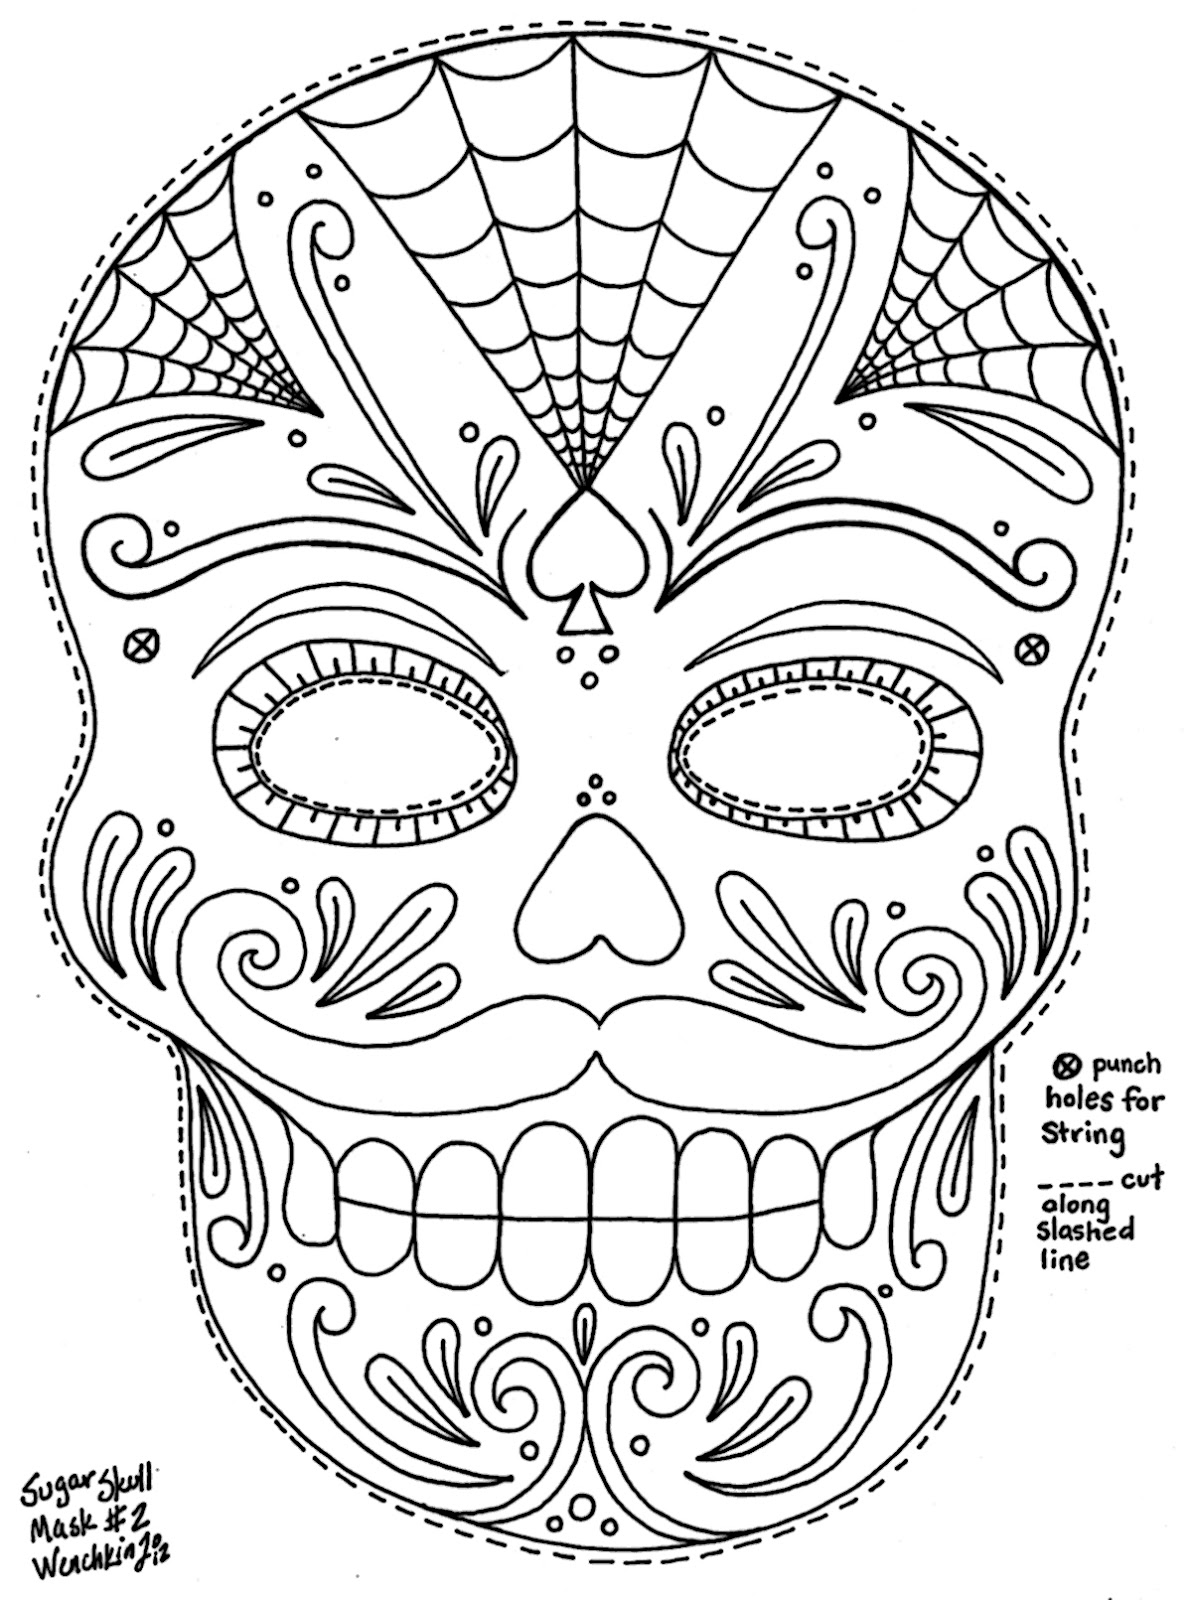 Swear word coloring book sarah bigwood - 17 Best Images About Artsy On Pinterest Coloring Pages Macrame Owl And Coloring